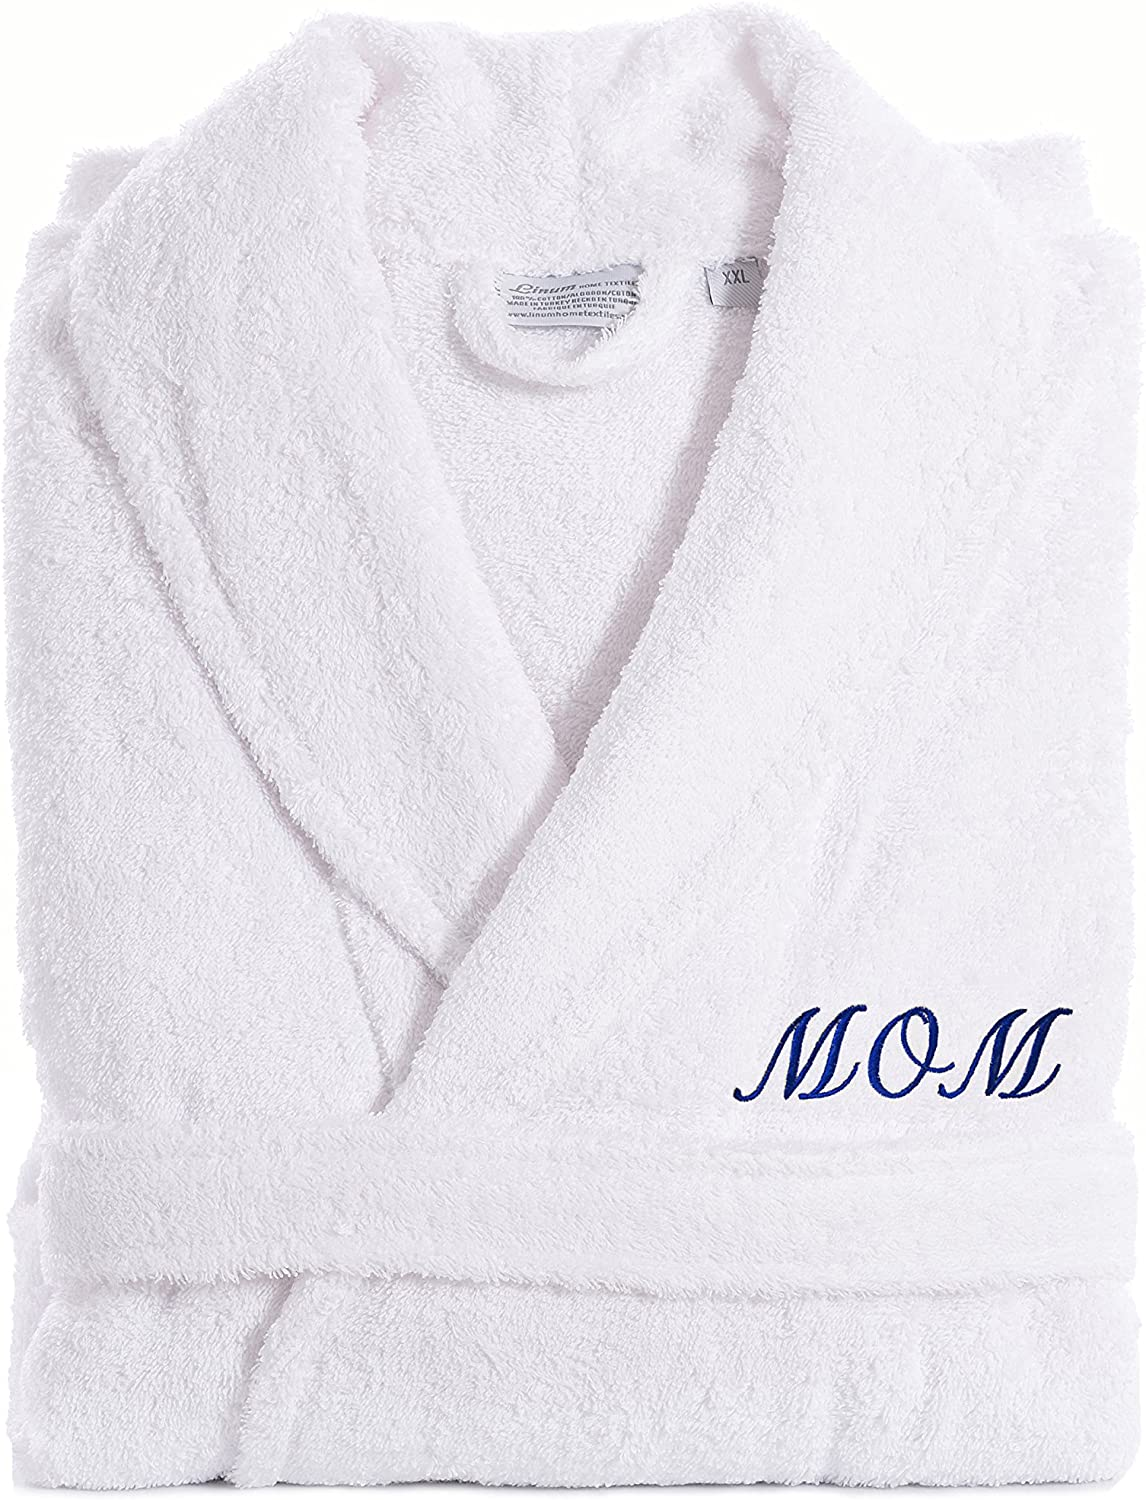 Linum Home Textiles TR00-LX-MOMN White Terry Bathrobe for MOM, Large/X-Large, Navy Embroidery